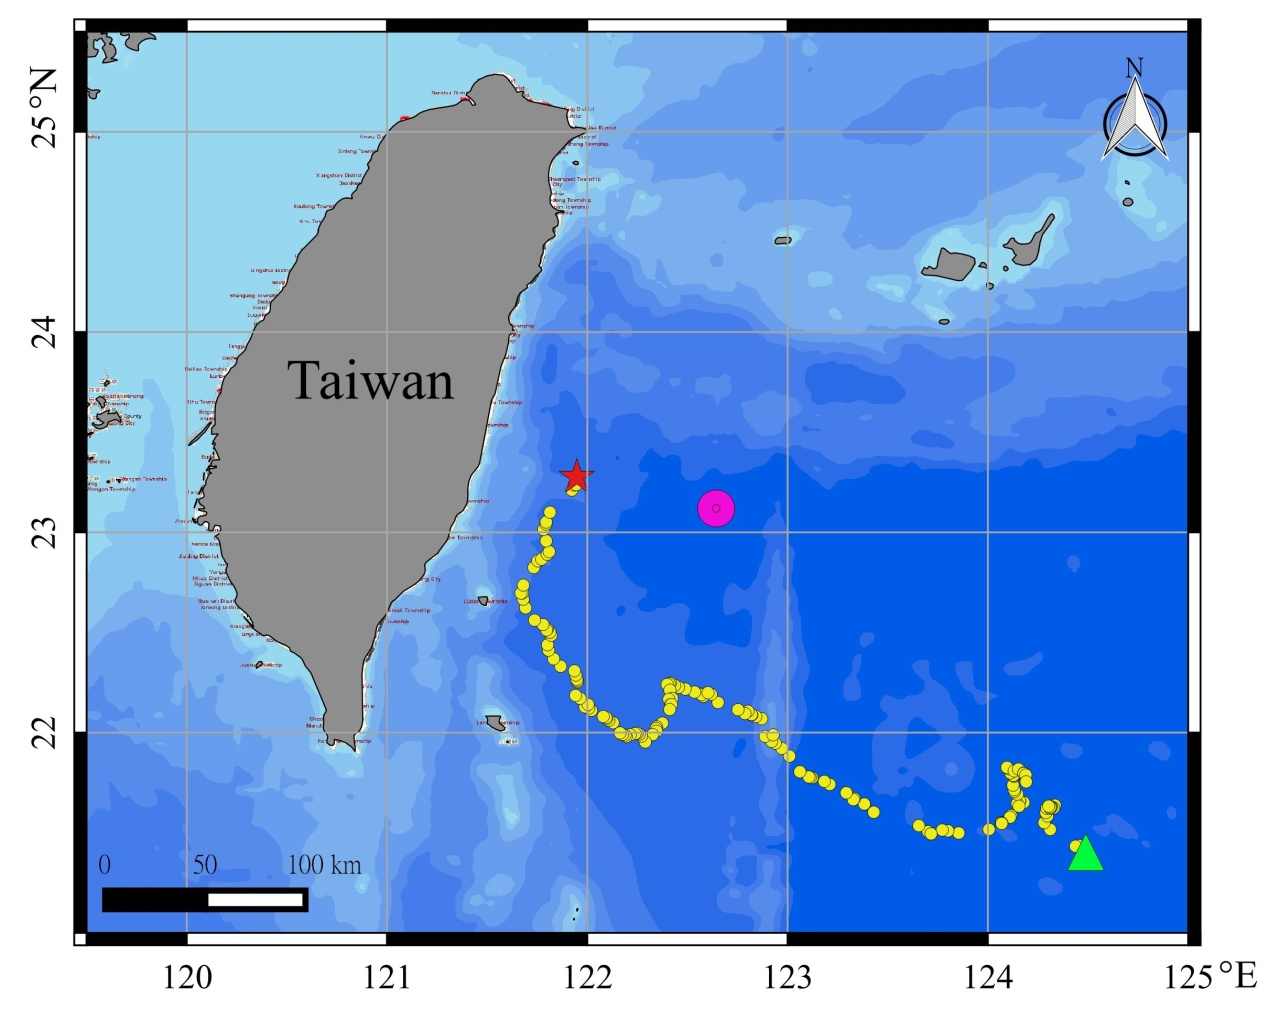 Map of tagging area (red star), pop-up area (green triangle), path of the tag once detached and floating (yellow circle), recovering area (pink circle) of the tag on a bigeye tuna. Credits Tuna and Billfish Tagging Project in Taiwan